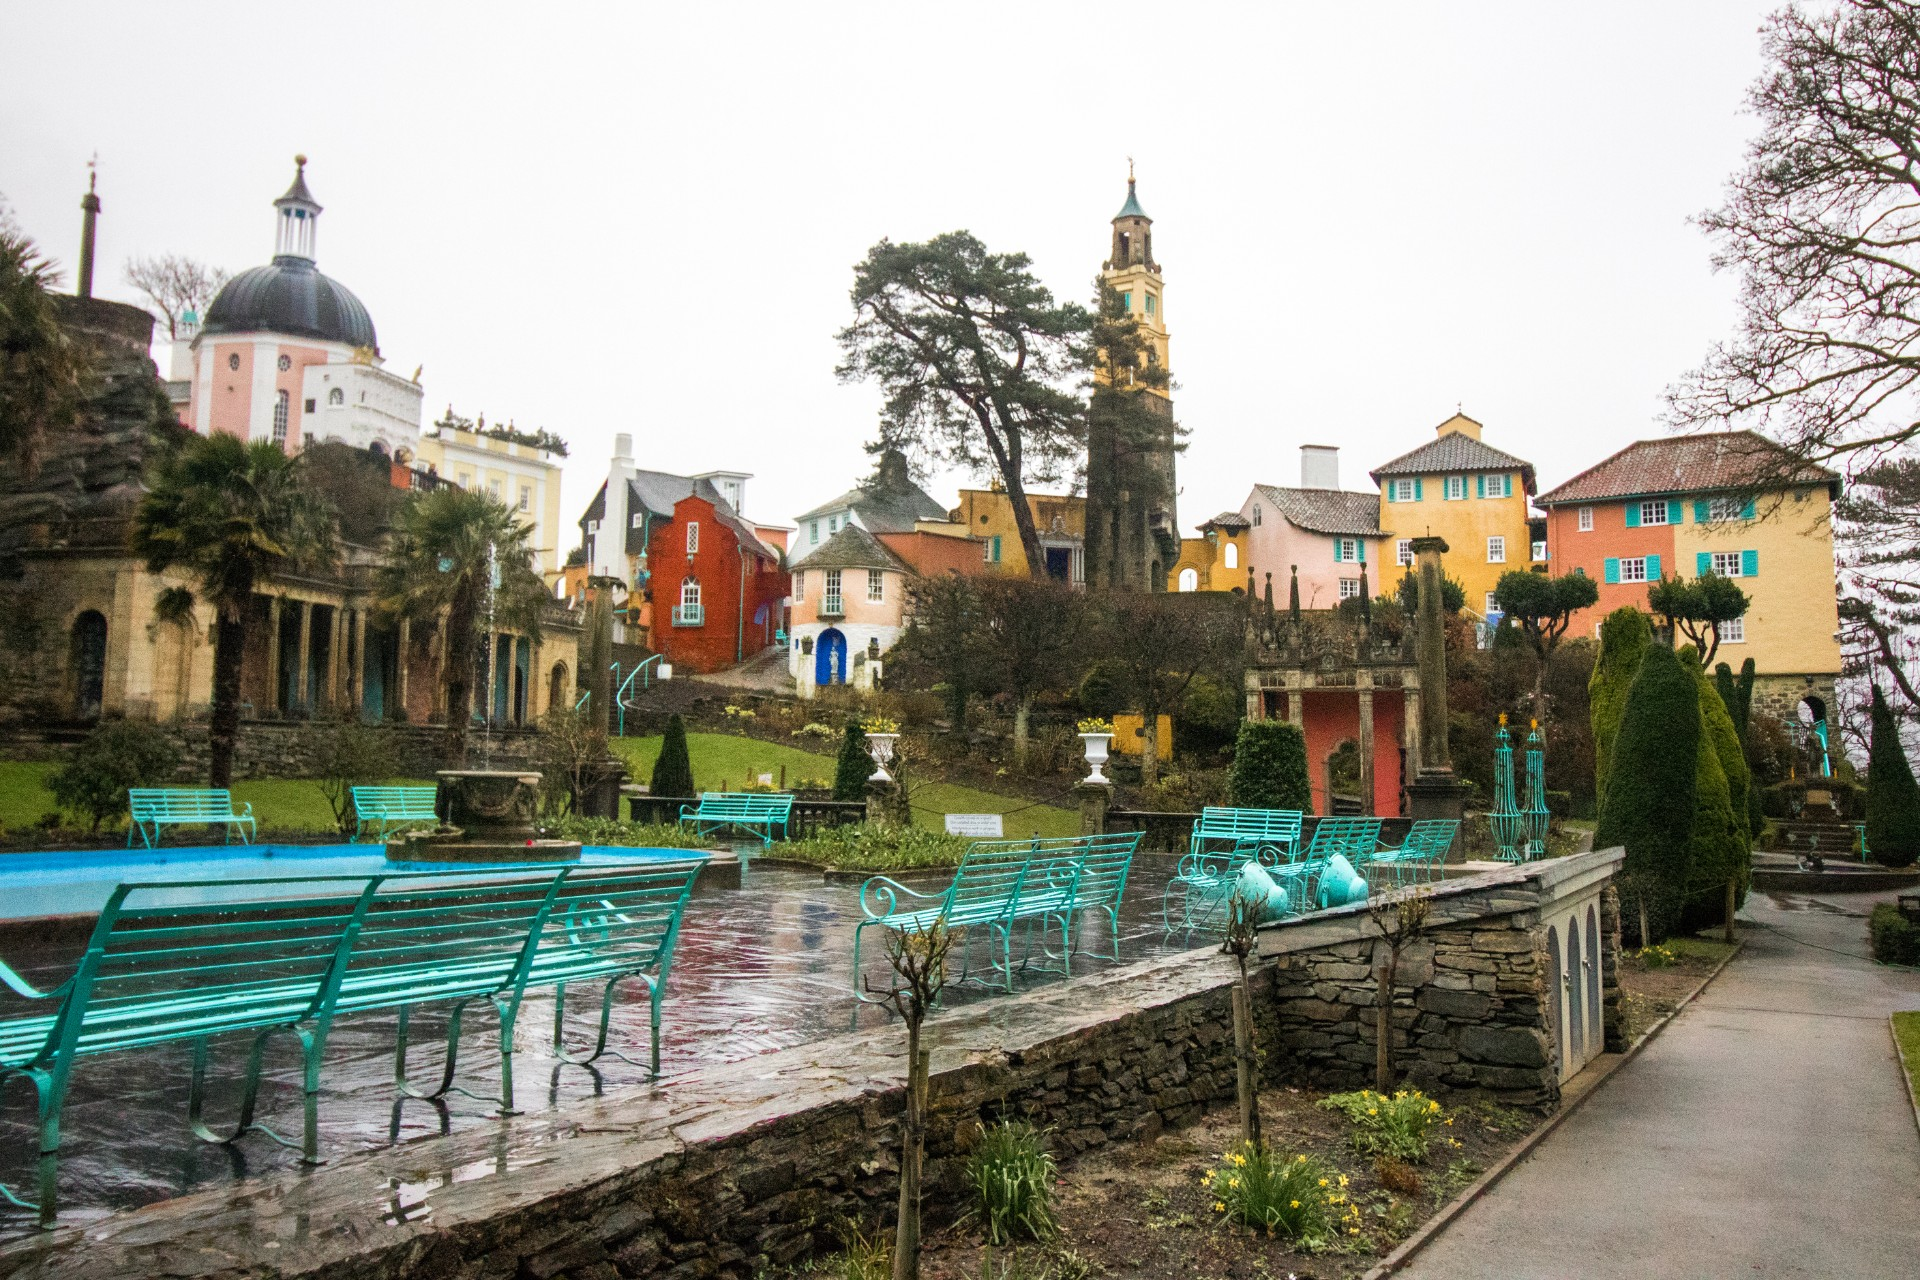 Portmeirion. An Adventurous Weekend in North Wales. What to see and do in North Wales in just 48 hours. North Wales weekend guide travel blog. Snowdonia National Park, Zip World, Velocity, Bounce Below, Criccieth, Portmeirion, Caernarfon, Pwlhelli. Click through to read more...